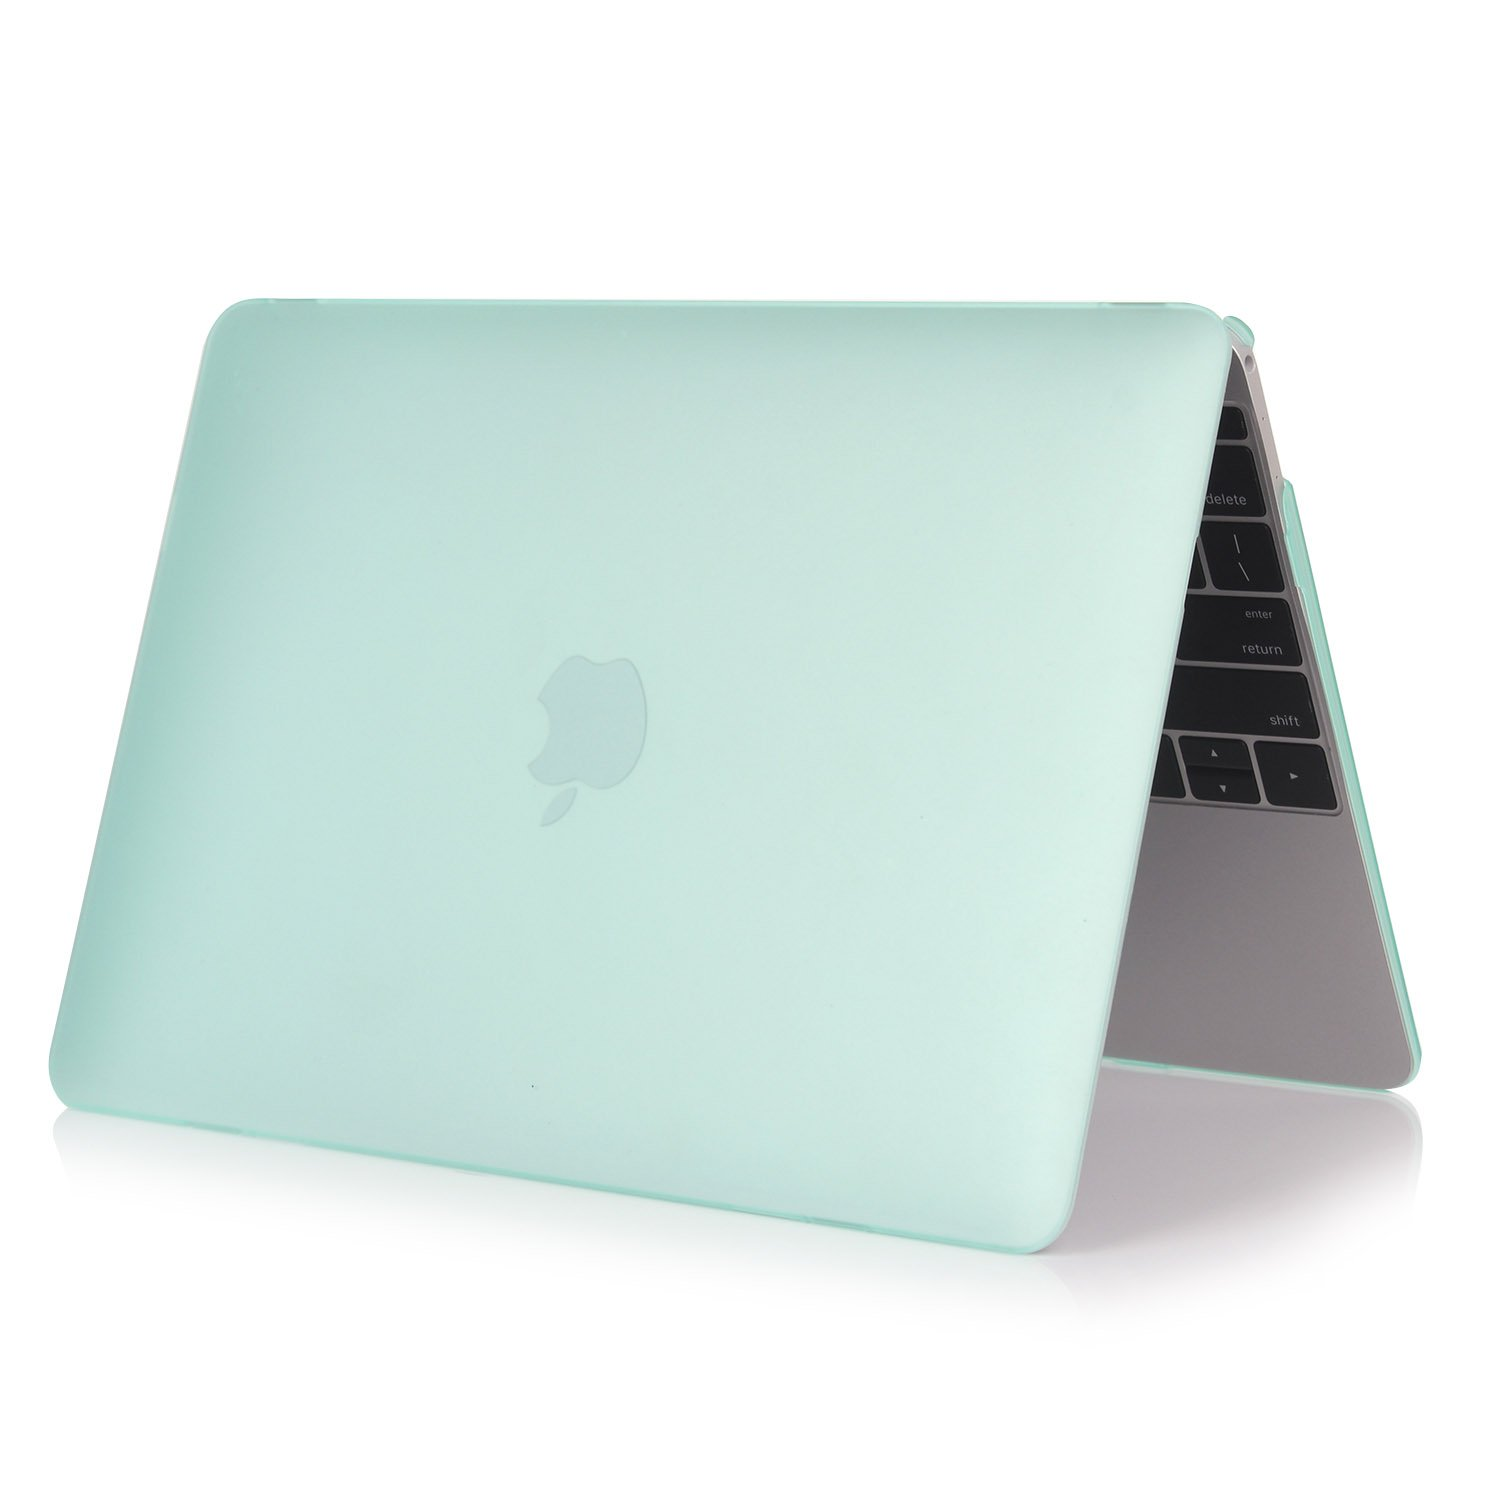 "11.6"" MOSISO MINT Matte Case for MacBook Air Laptop SERENITY BLUE FAST FREE SHIPPING USA"